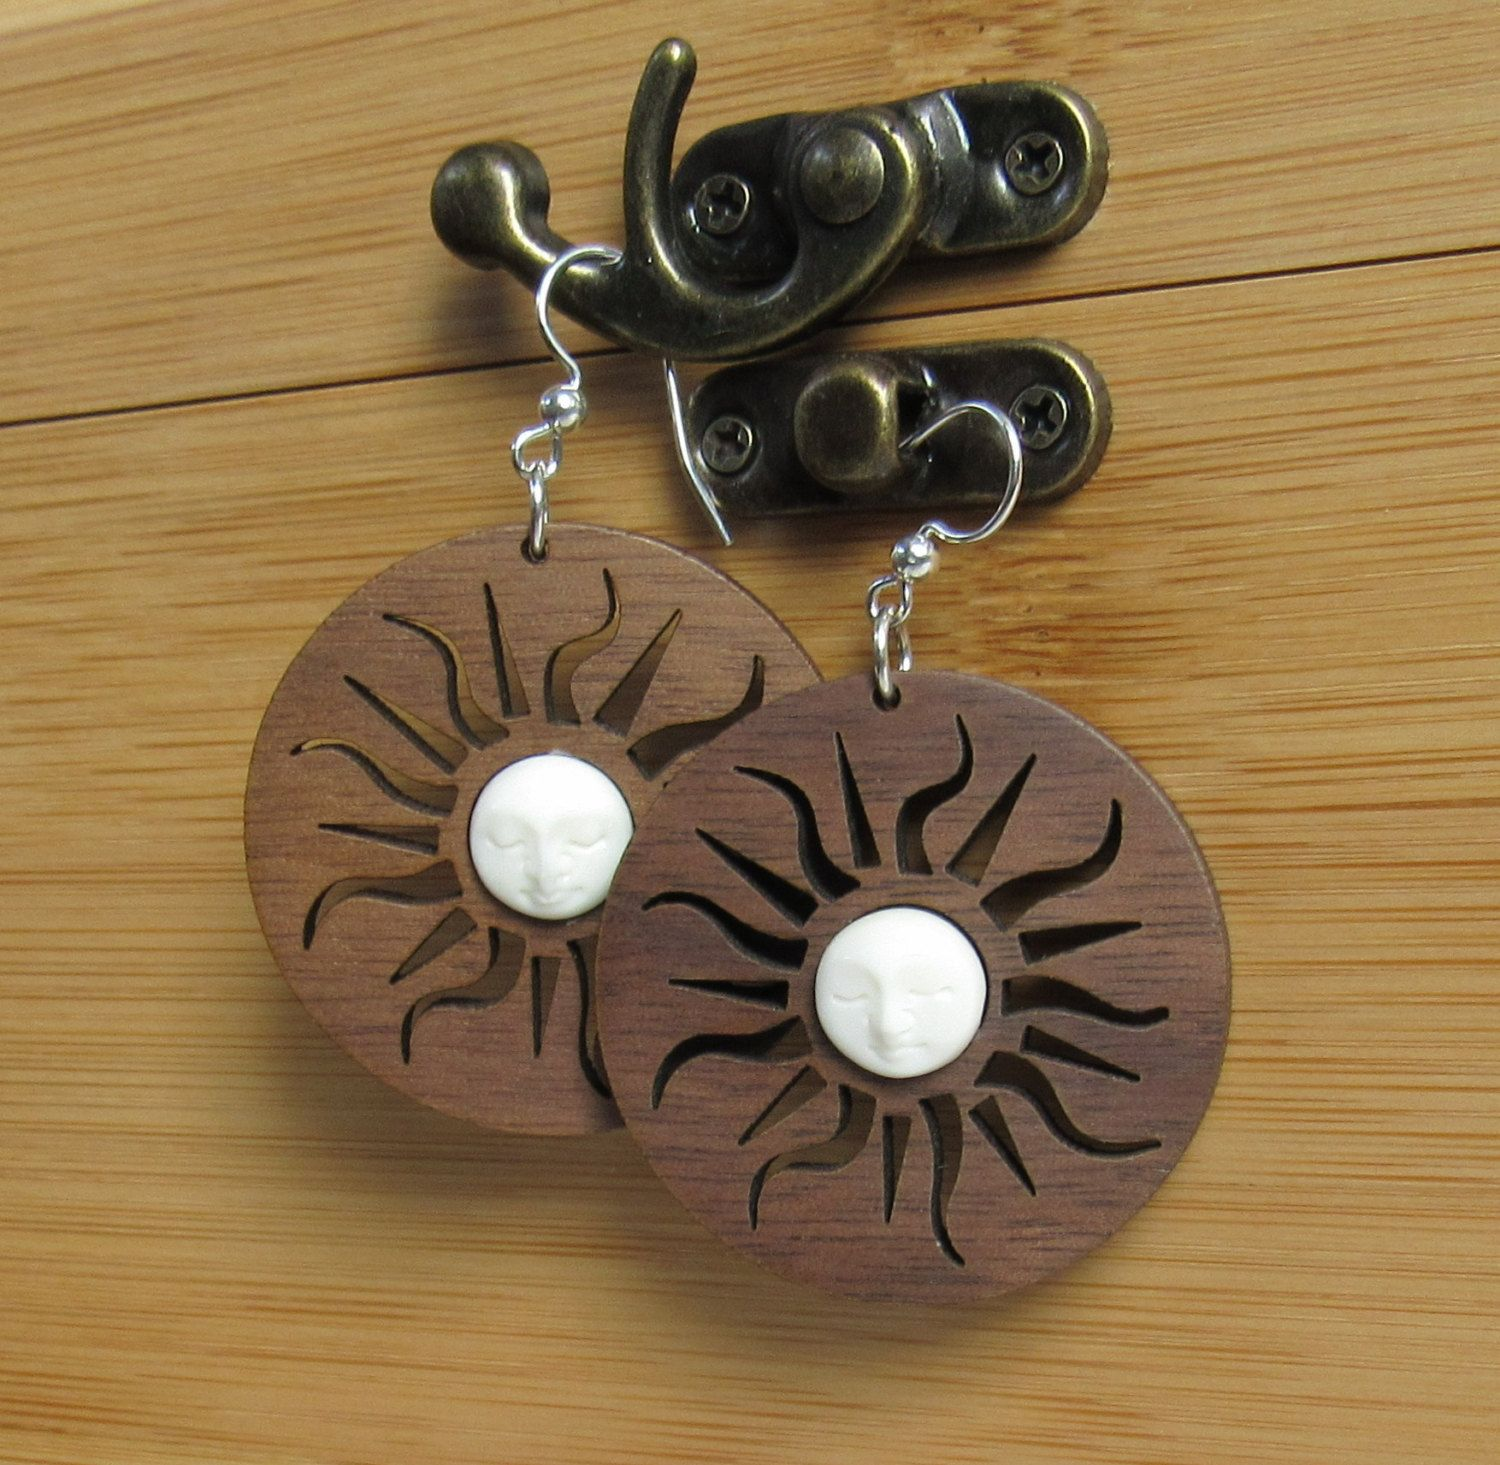 Sun and Moon Earrings, Laser Cut Wood Earrings, Moon Face Earrings, Walnut Earrings, Carved Bone Earrings, Night and Day, Yoga Jewelry,Retro by giveitengraved on Etsy